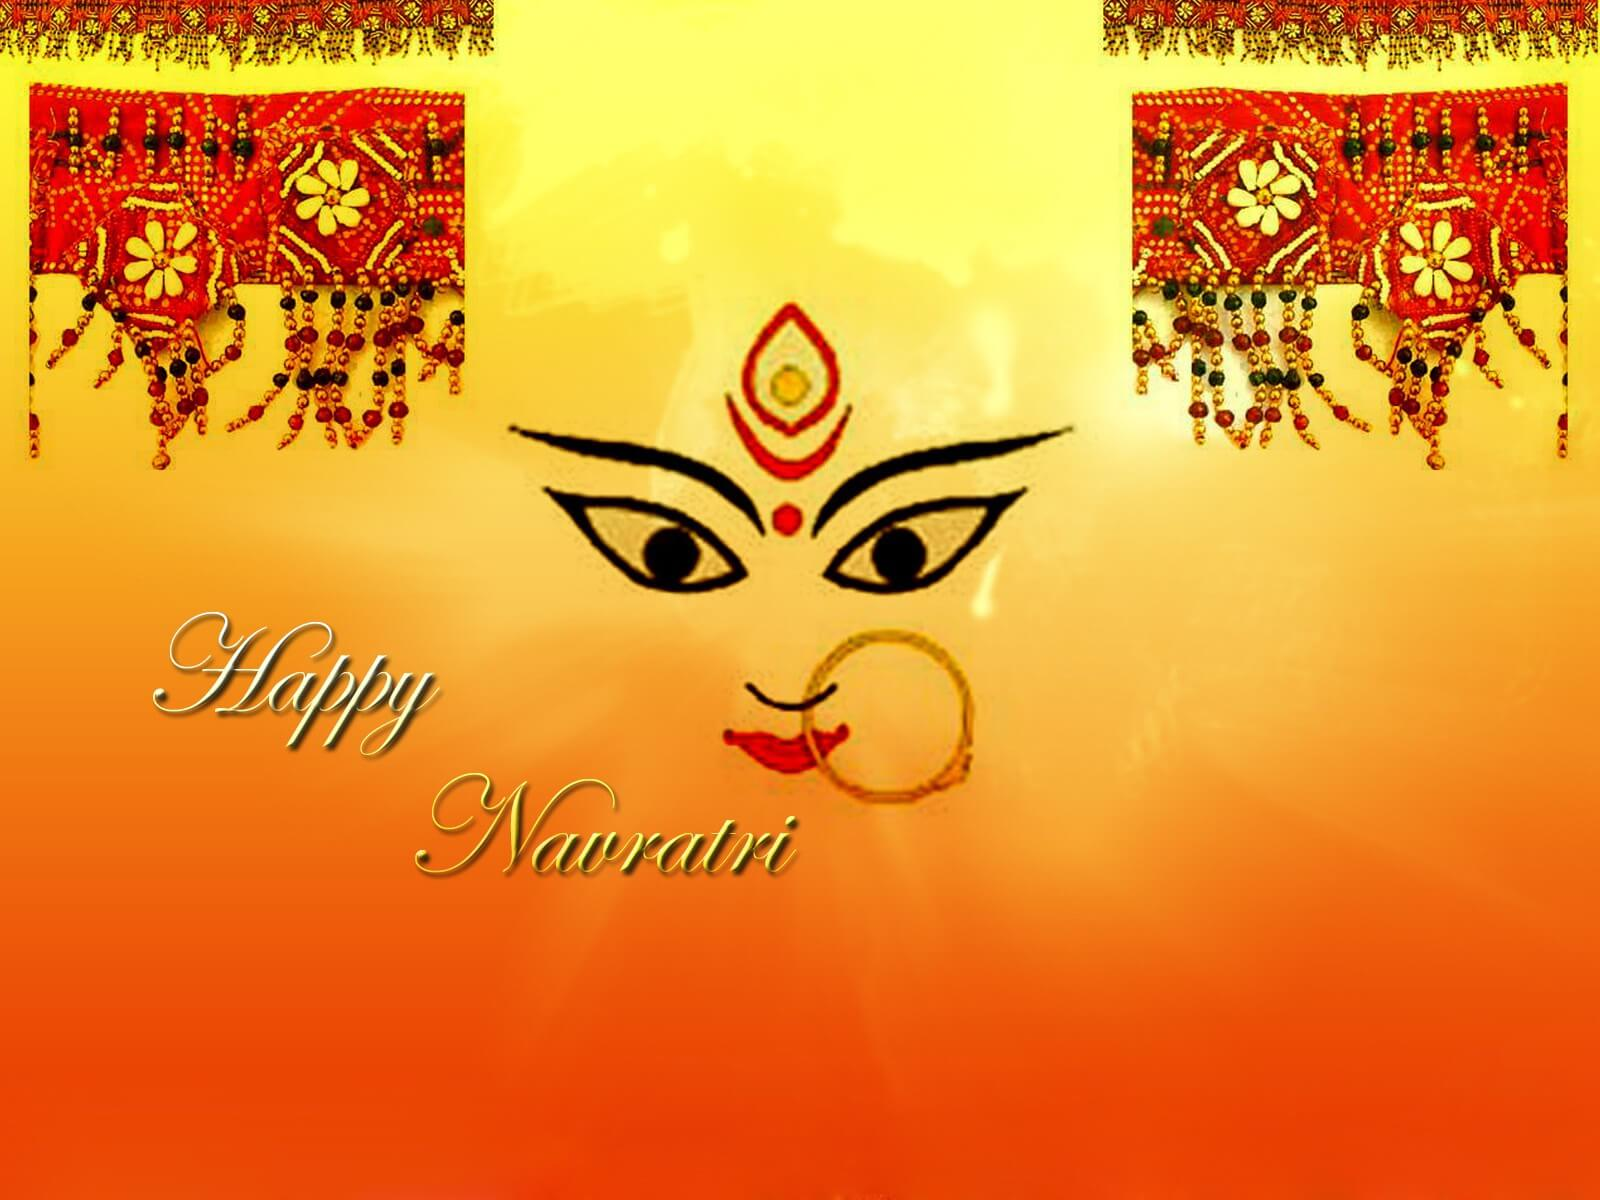 happy navratri wishes, wallpaper, greeting images